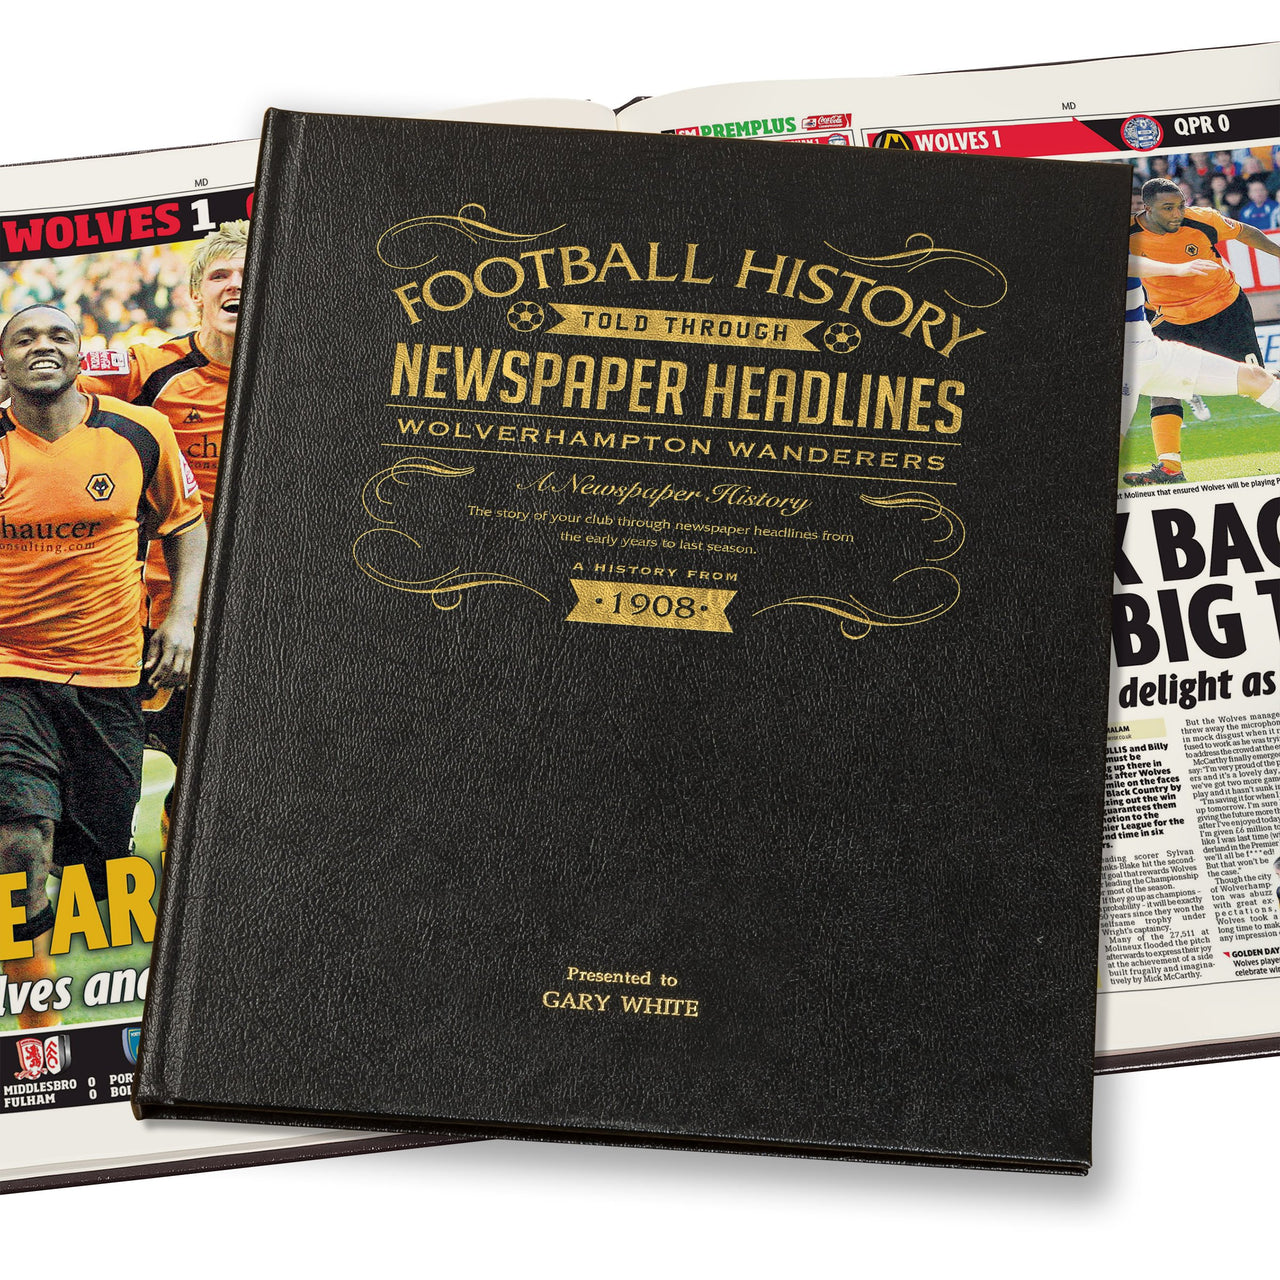 Wolves Newspaper Book - Leather Black Cover